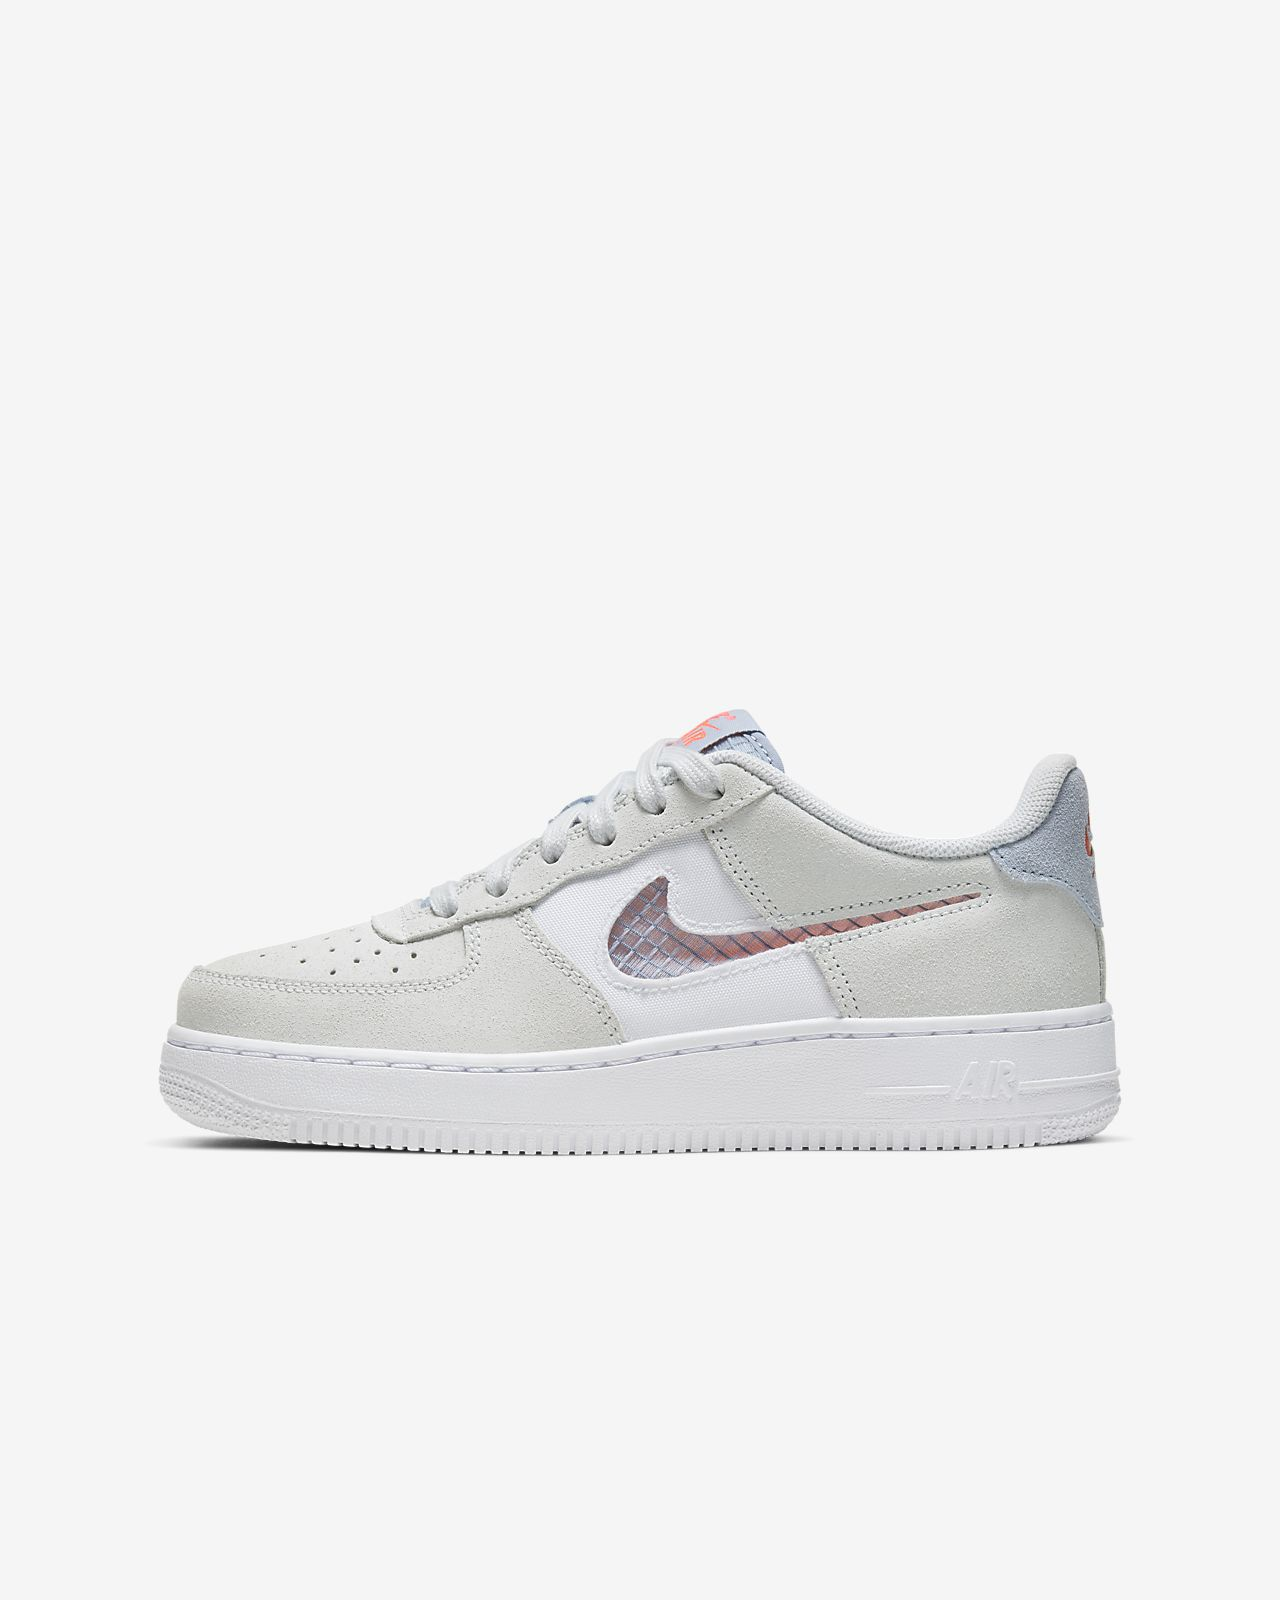 Nike Air Force 1 LV8 (GS) 大童运动童鞋